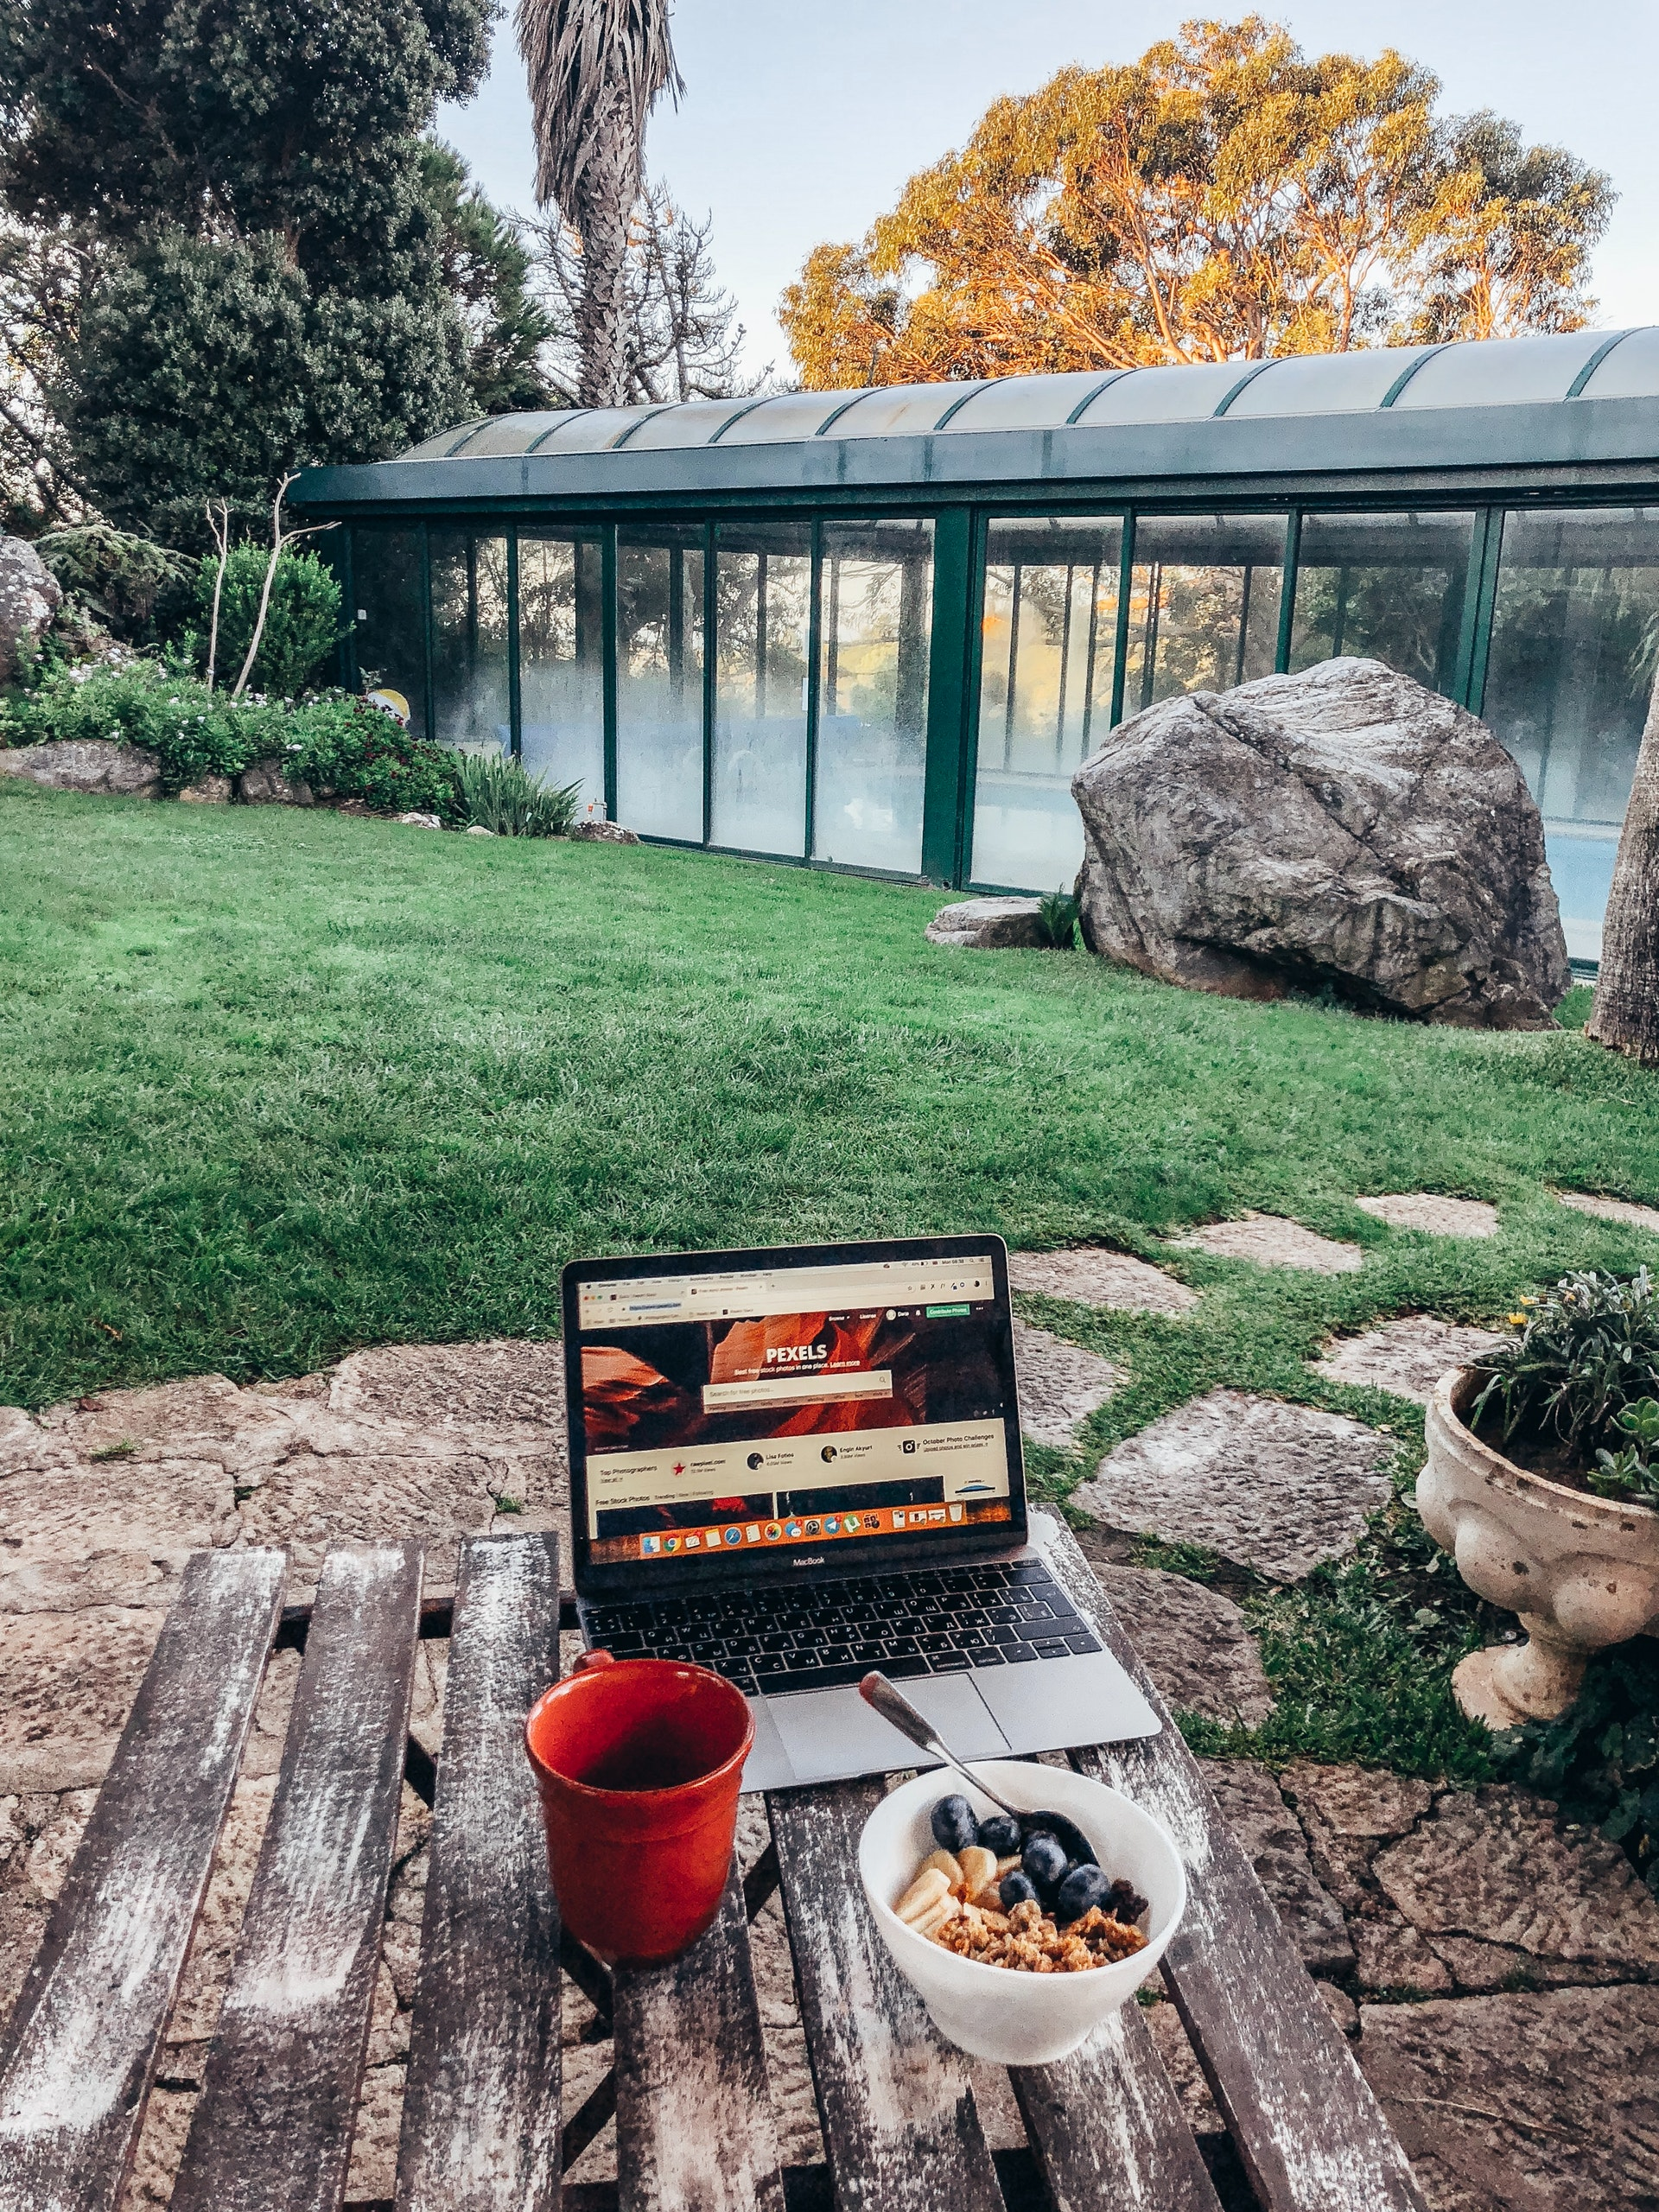 Offer flexible and remote working